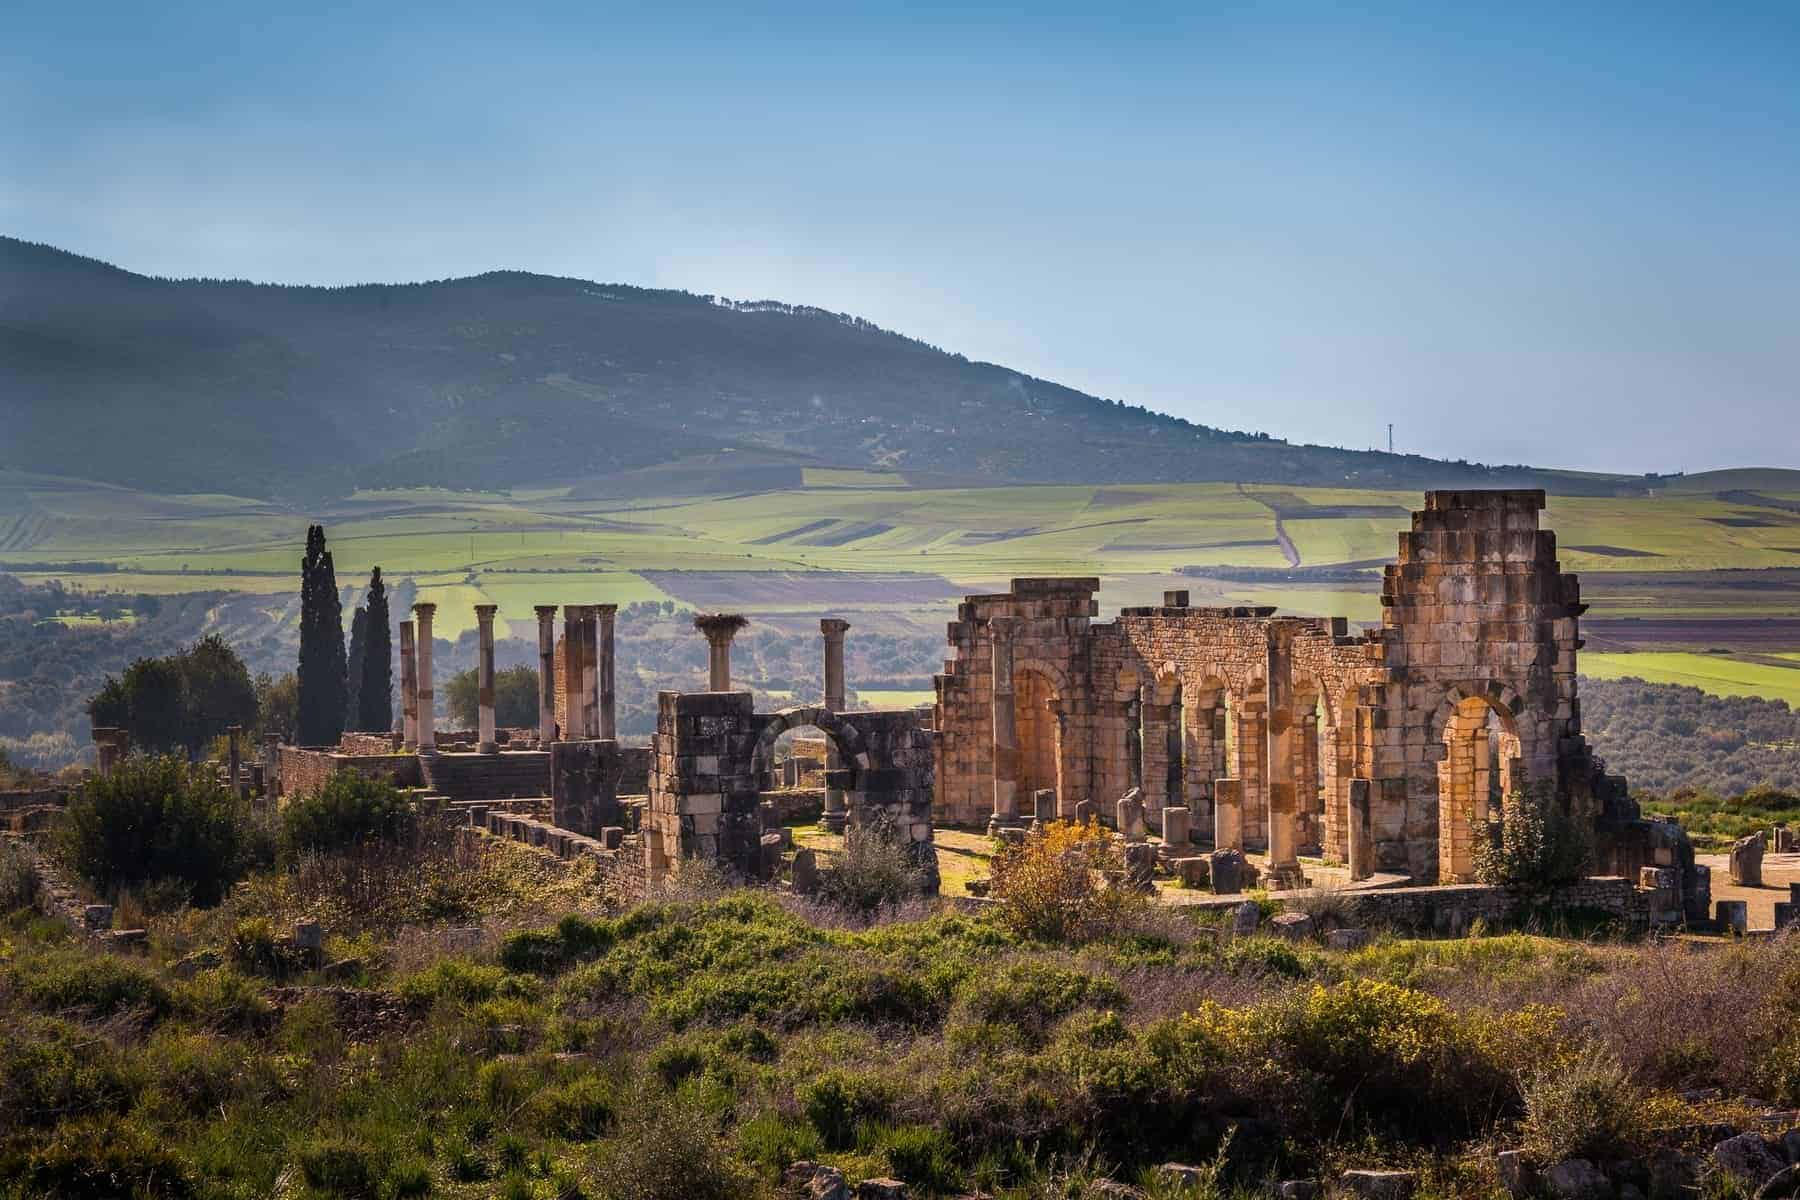 View of the Basilica, Volubilis, Morocco